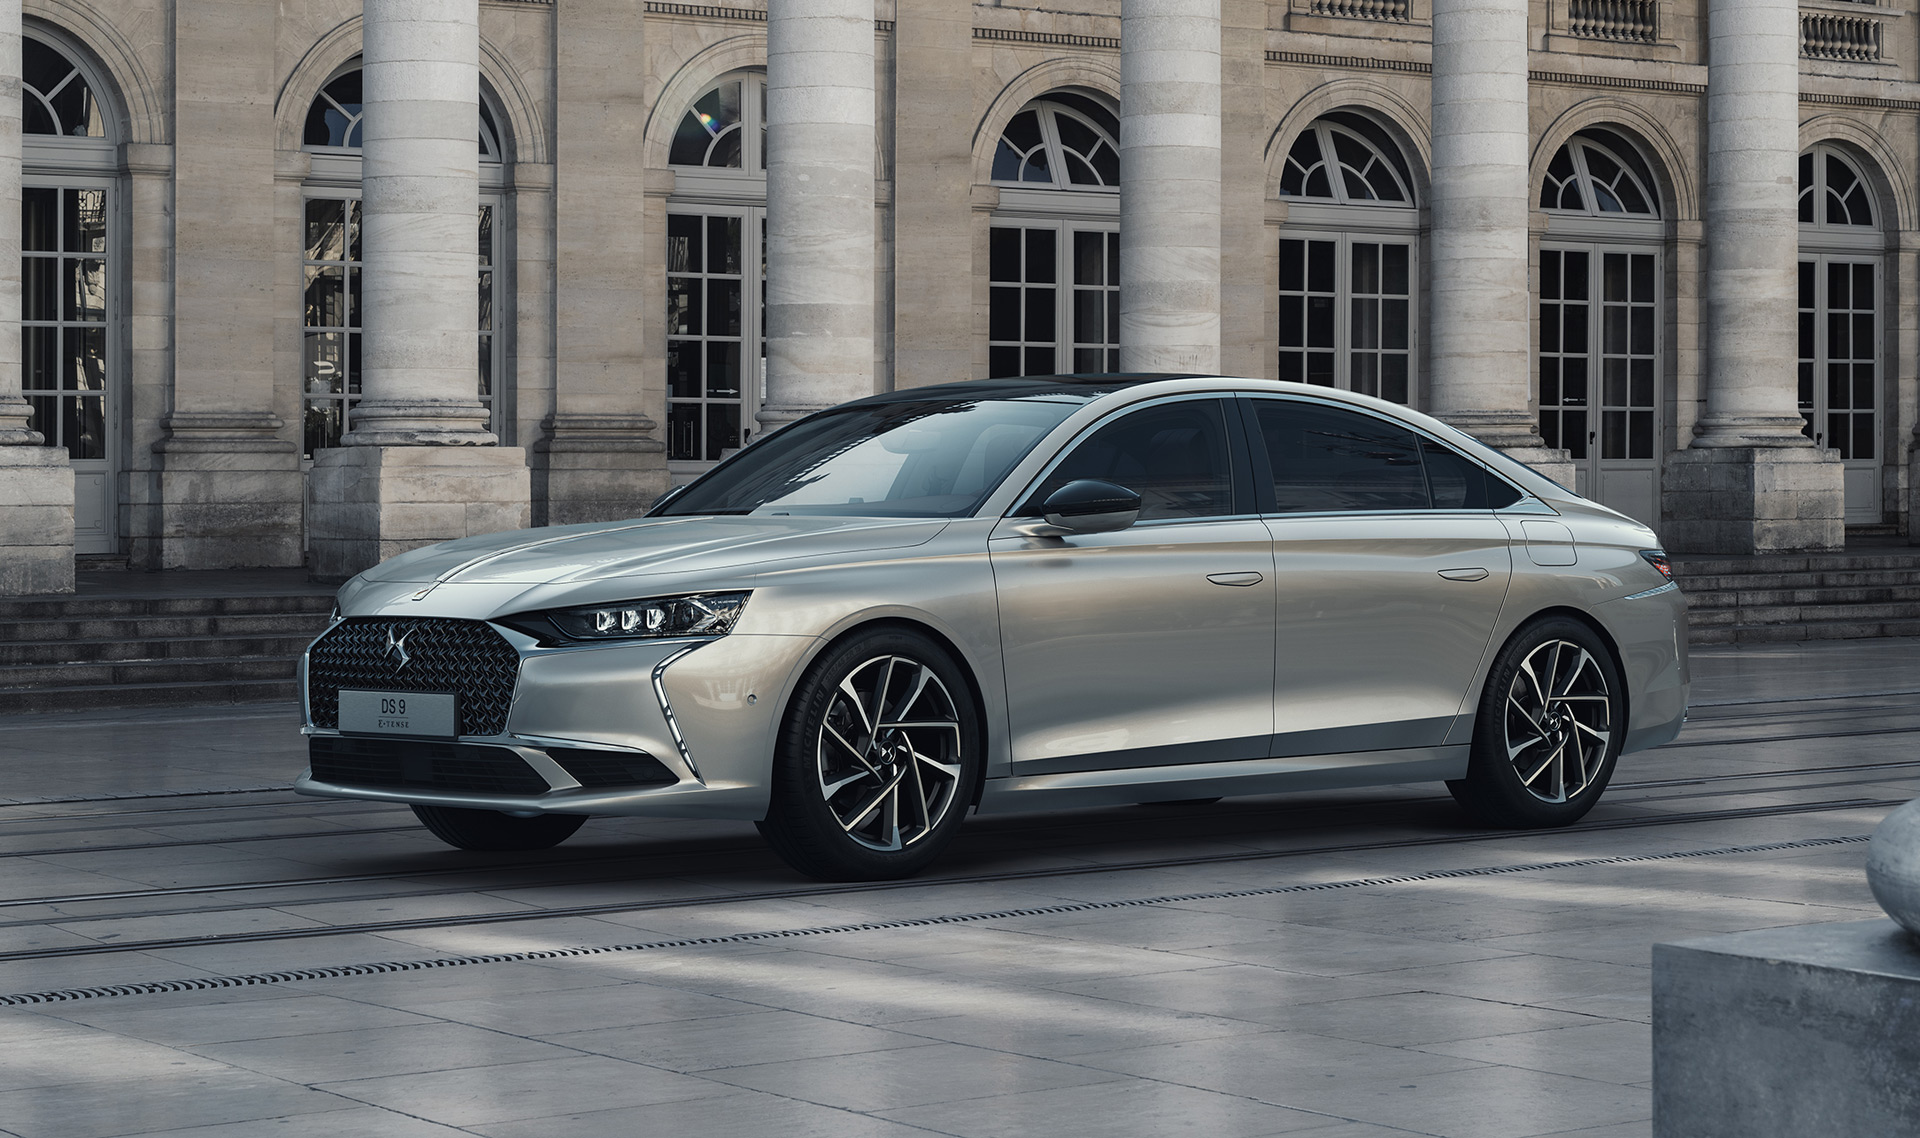 DS 9 is a French flagship sedan